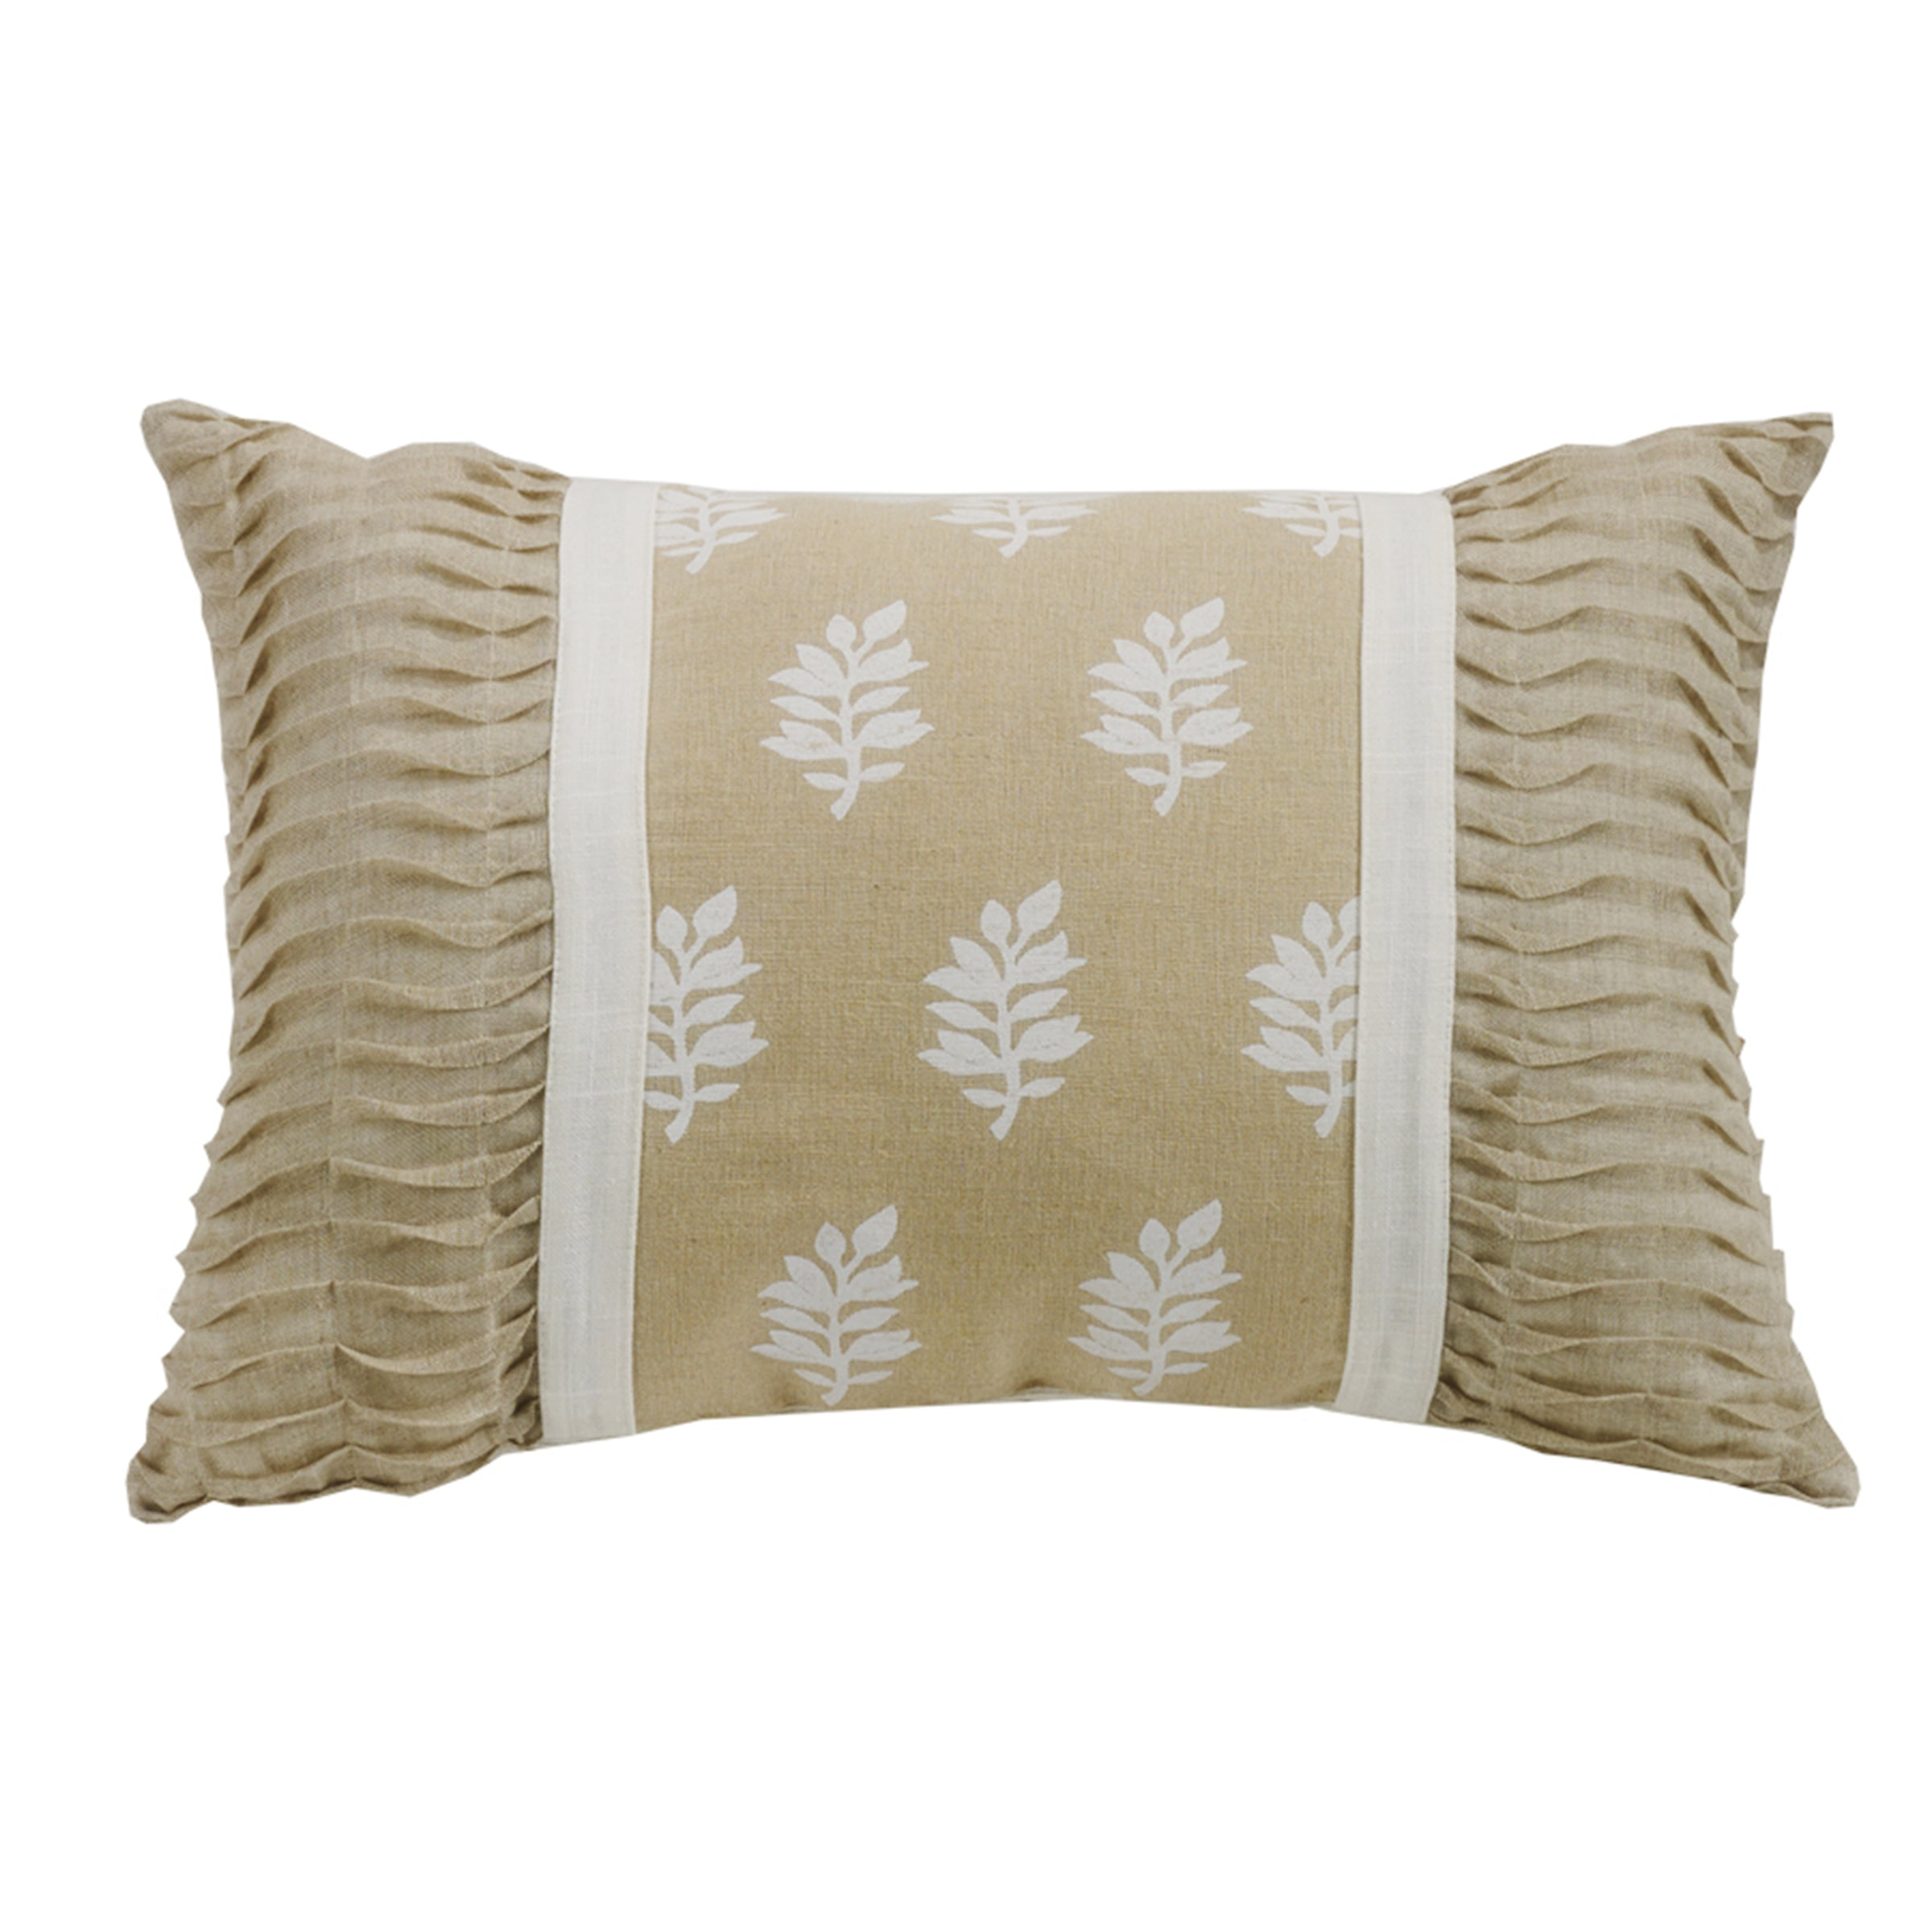 FB5400P4  Newport Oblong Pillow with Rouching Ends